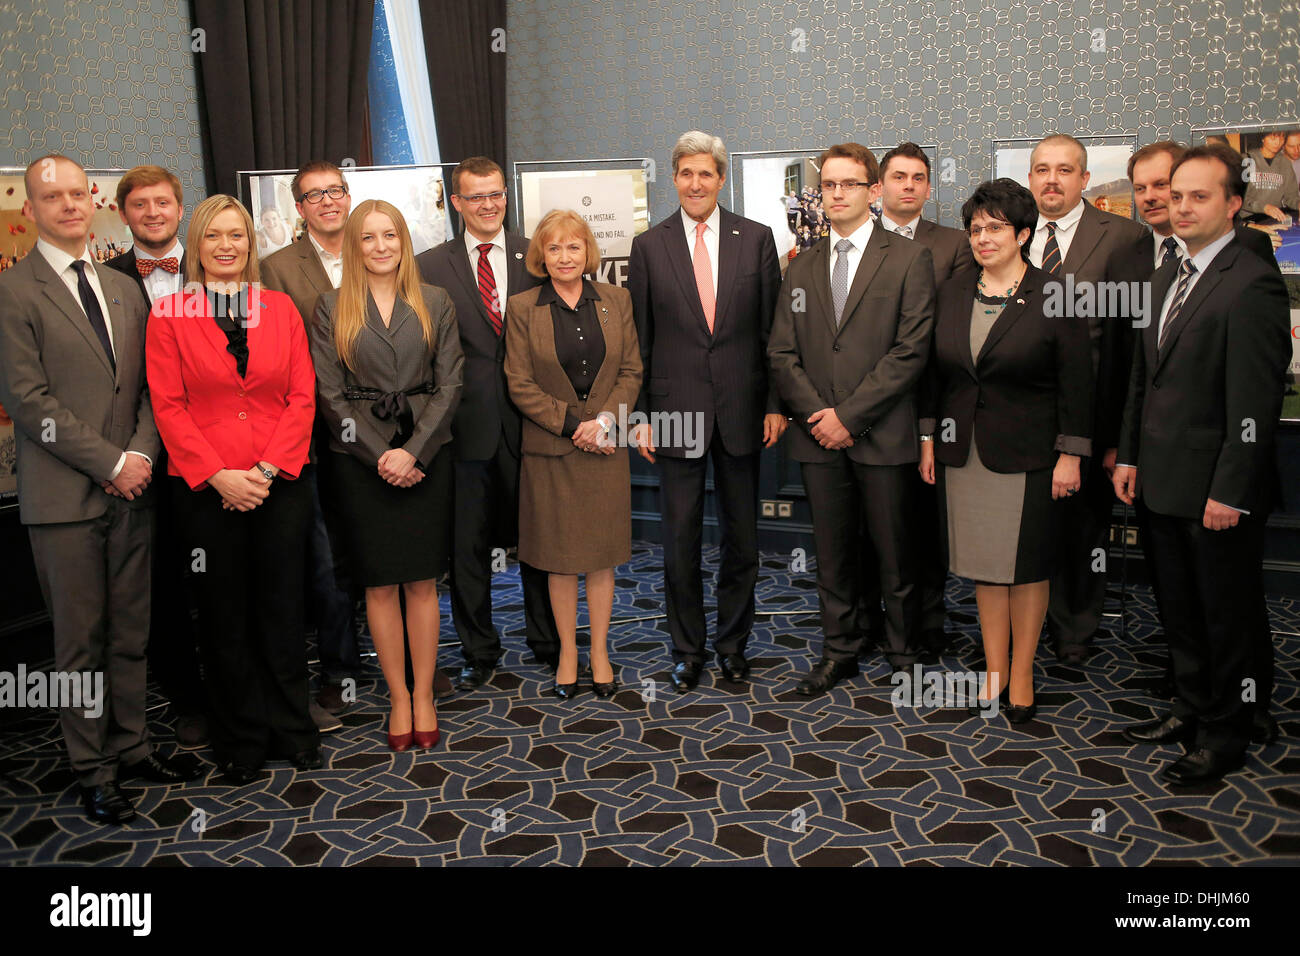 Secretary Kerry Meets With Alumni From the Polish Ministry of Science and Higher Education's Top 500 Innovators Program - Stock Image